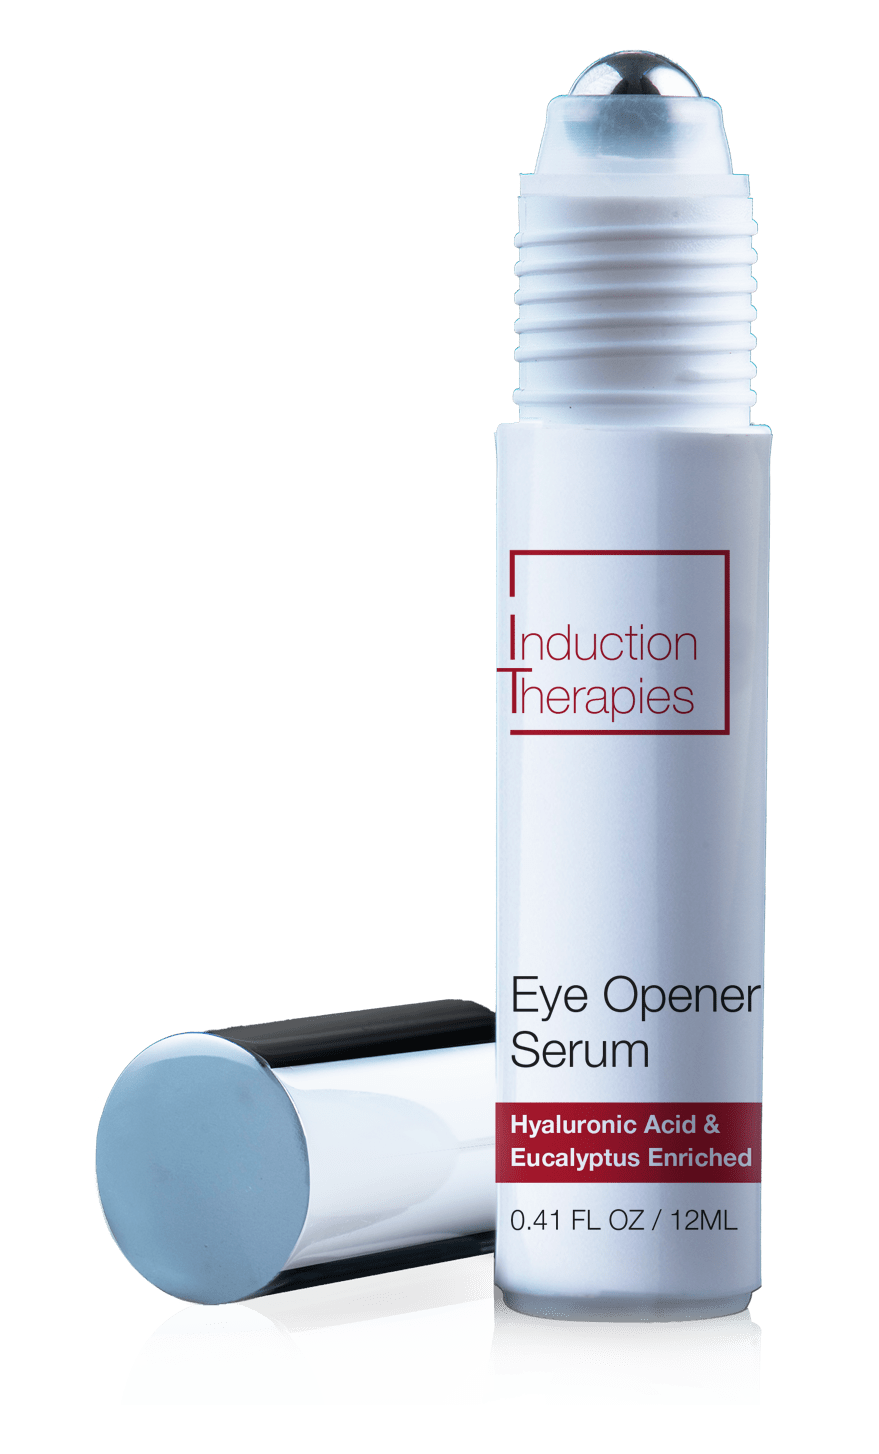 Eye Opener Serum Image